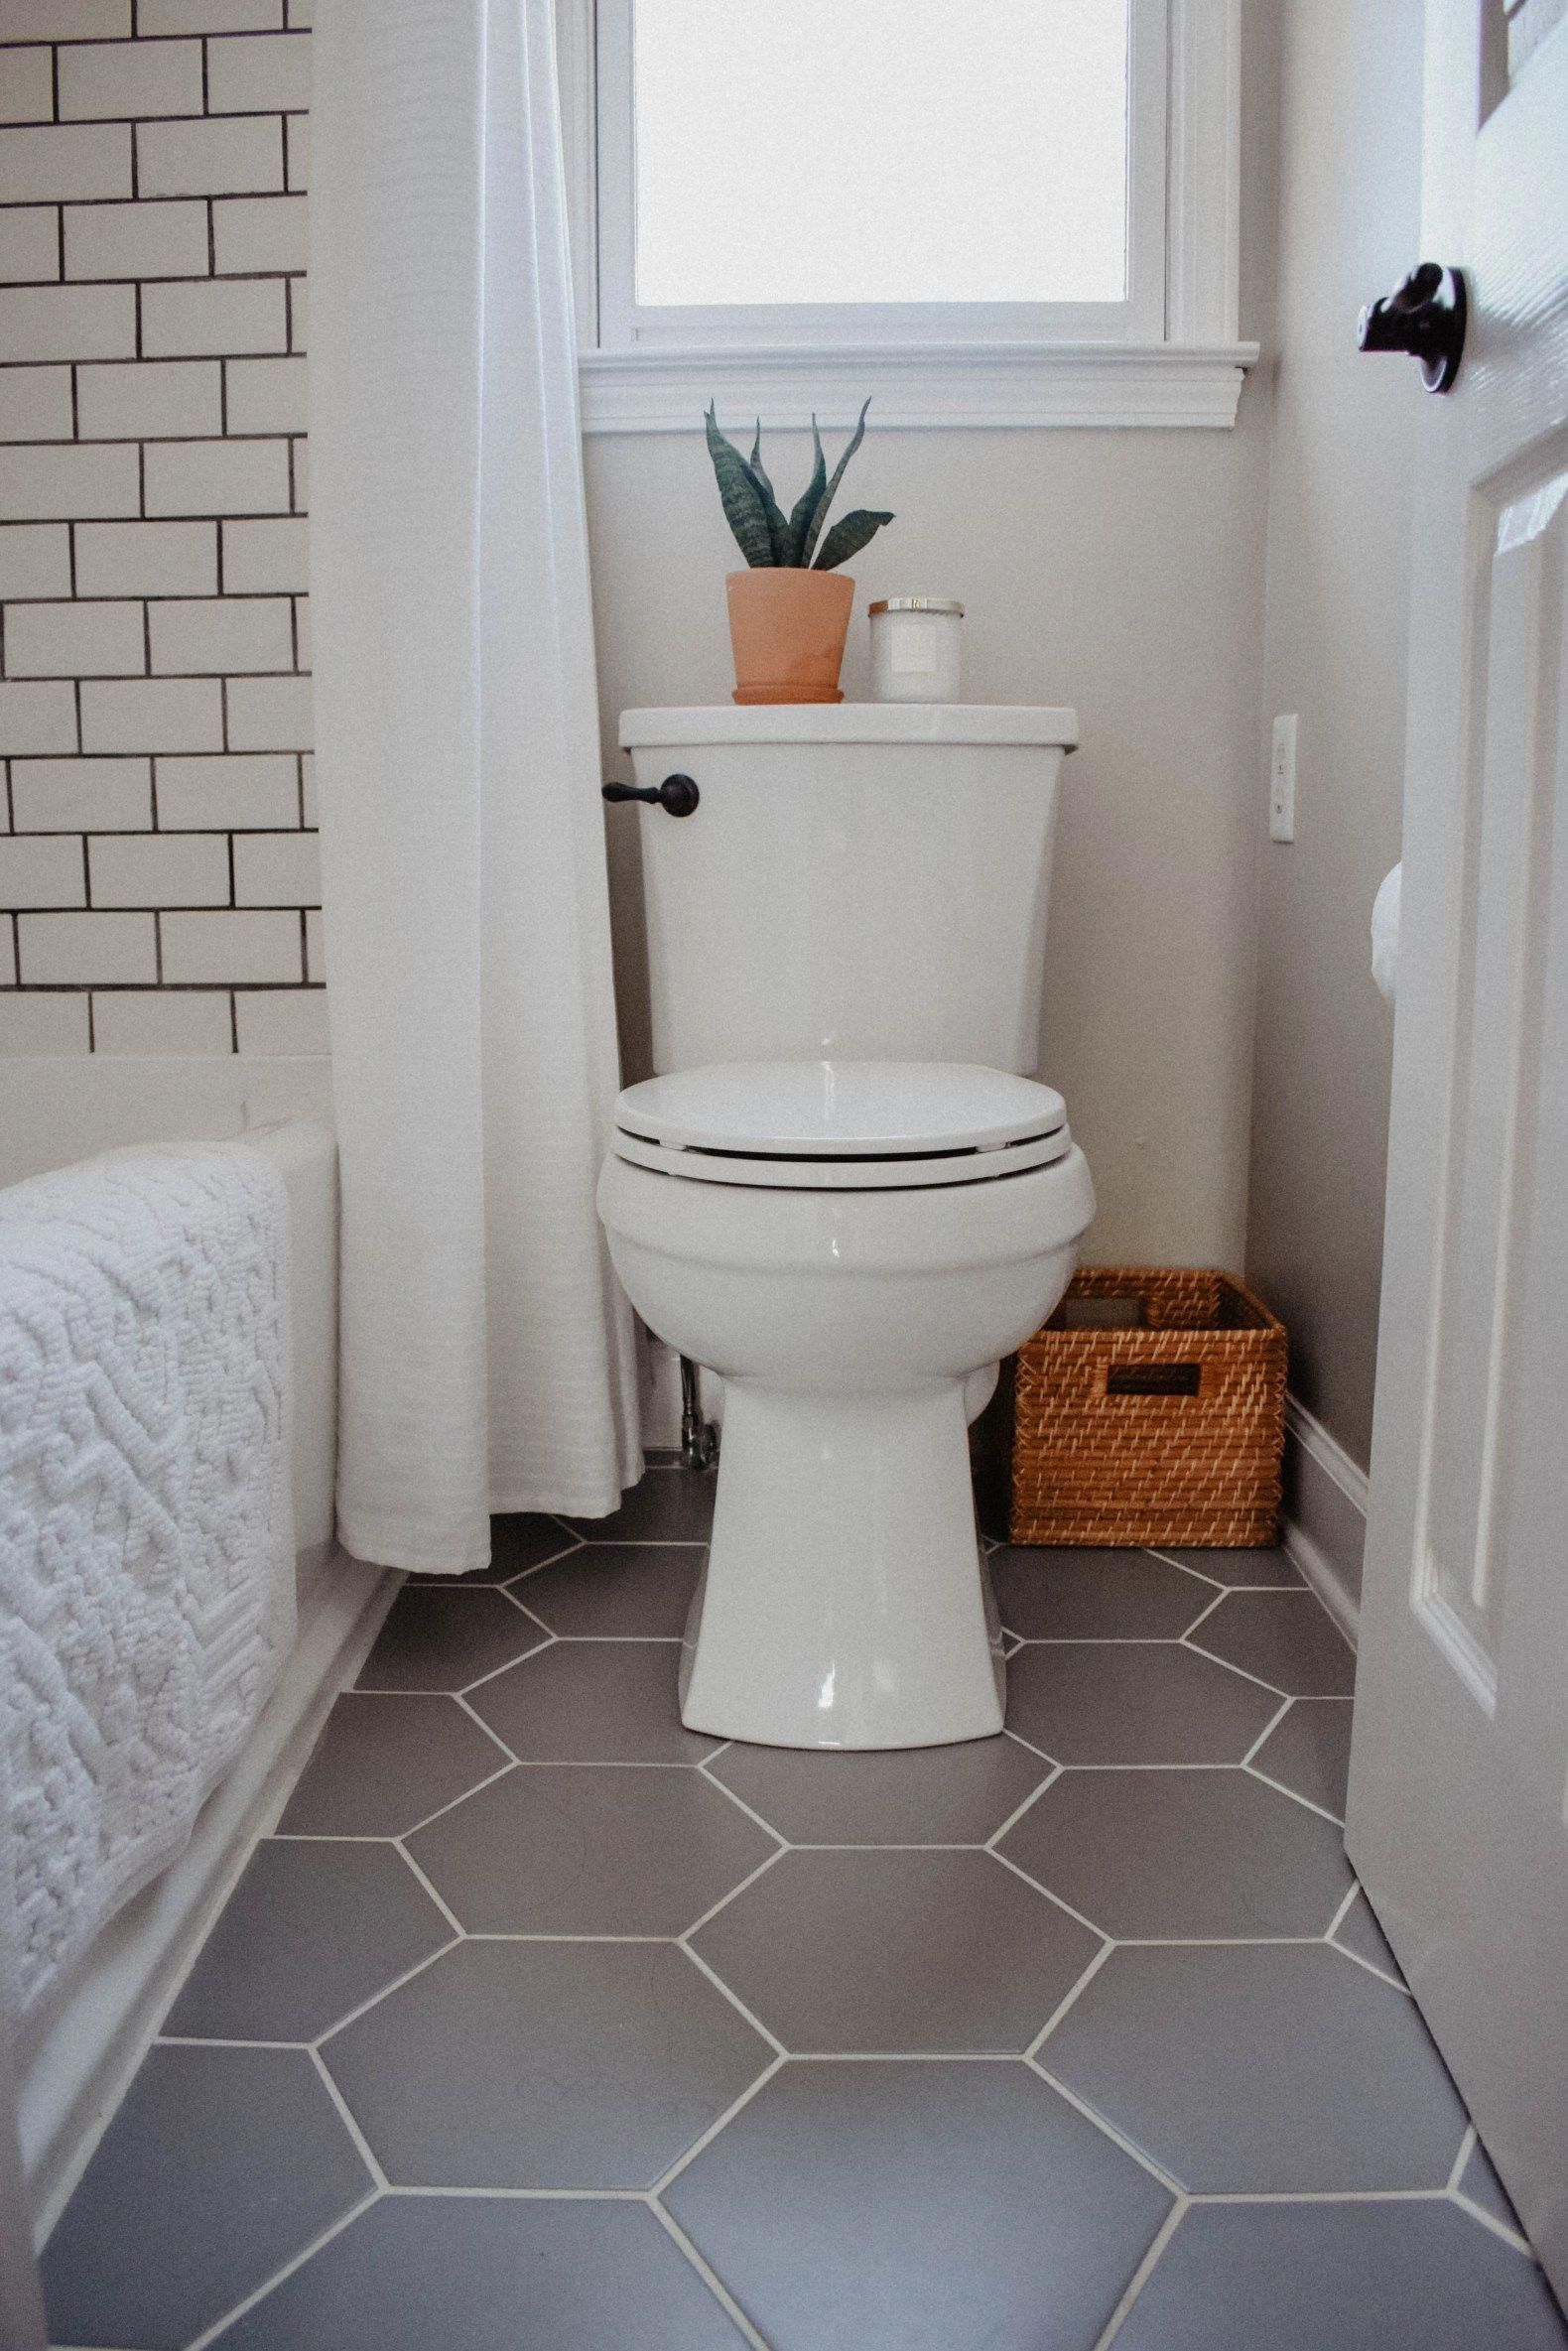 Soccer News For International Soccer Football And Futbol Teams And Leagues With Images Modern Boho Bathroom Small Bathroom Remodel Boho Bathroom